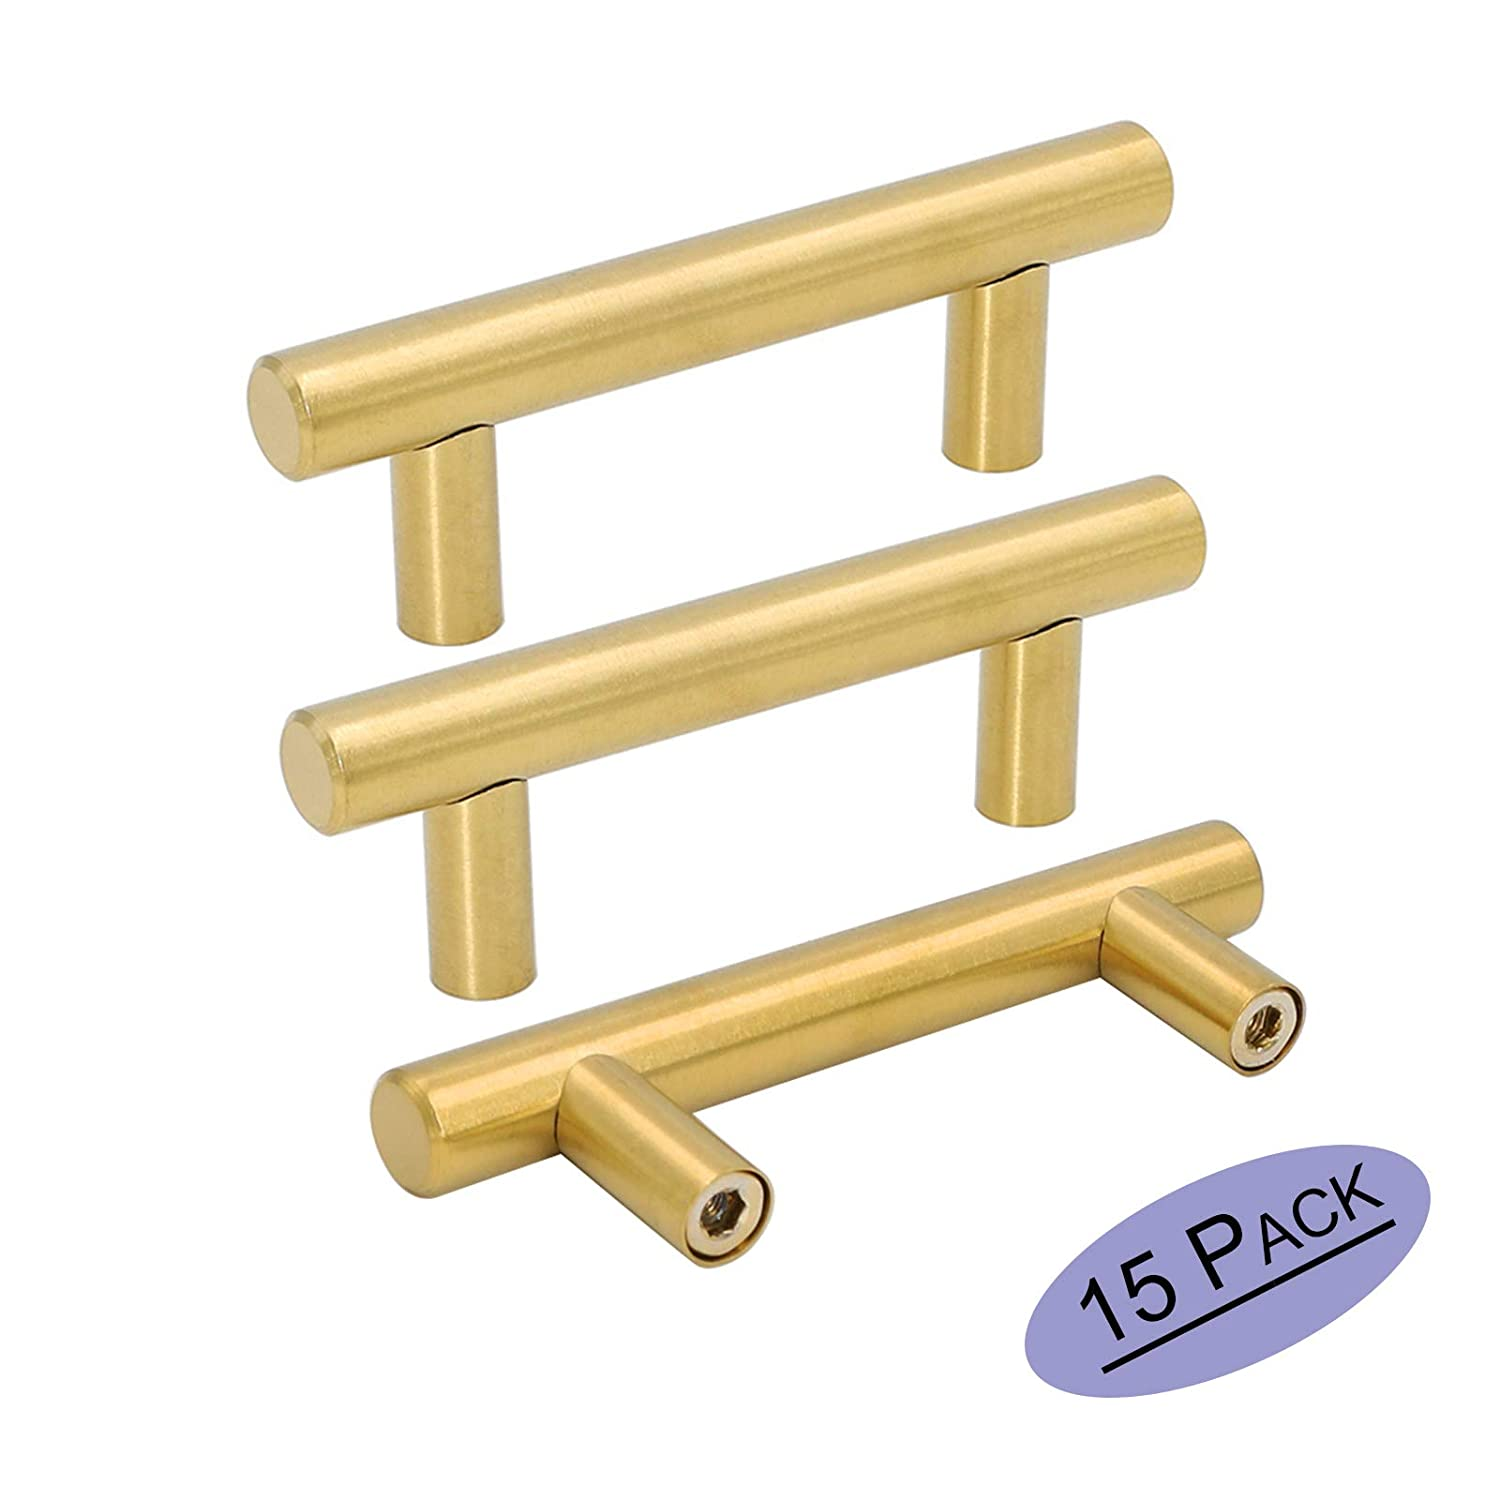 15pcs Goldenwarm Brushed Brass Cabinet Cupboard Drawer Door Handle Pull Knob LS201GD64 for Furniture Kitchen Hardware 2-1/2inch Hole Center 4in Overall Length